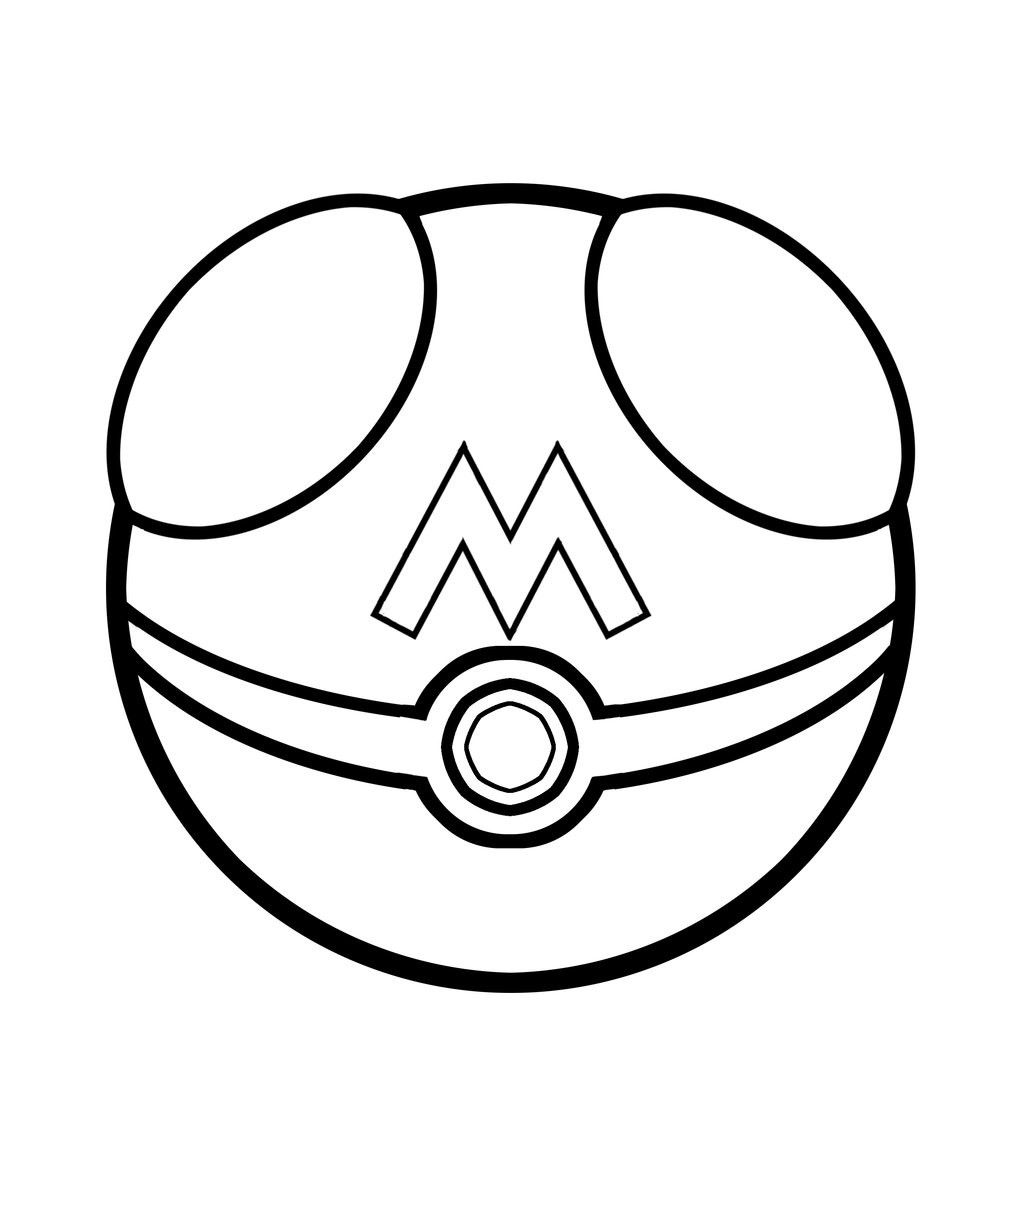 Pokemon Ball Coloring Page From The Thousand Pictures Online With Regards To Pokemon Ball Coloring Page Pokemon Coloring Pokemon Coloring Pages Pokemon Ball